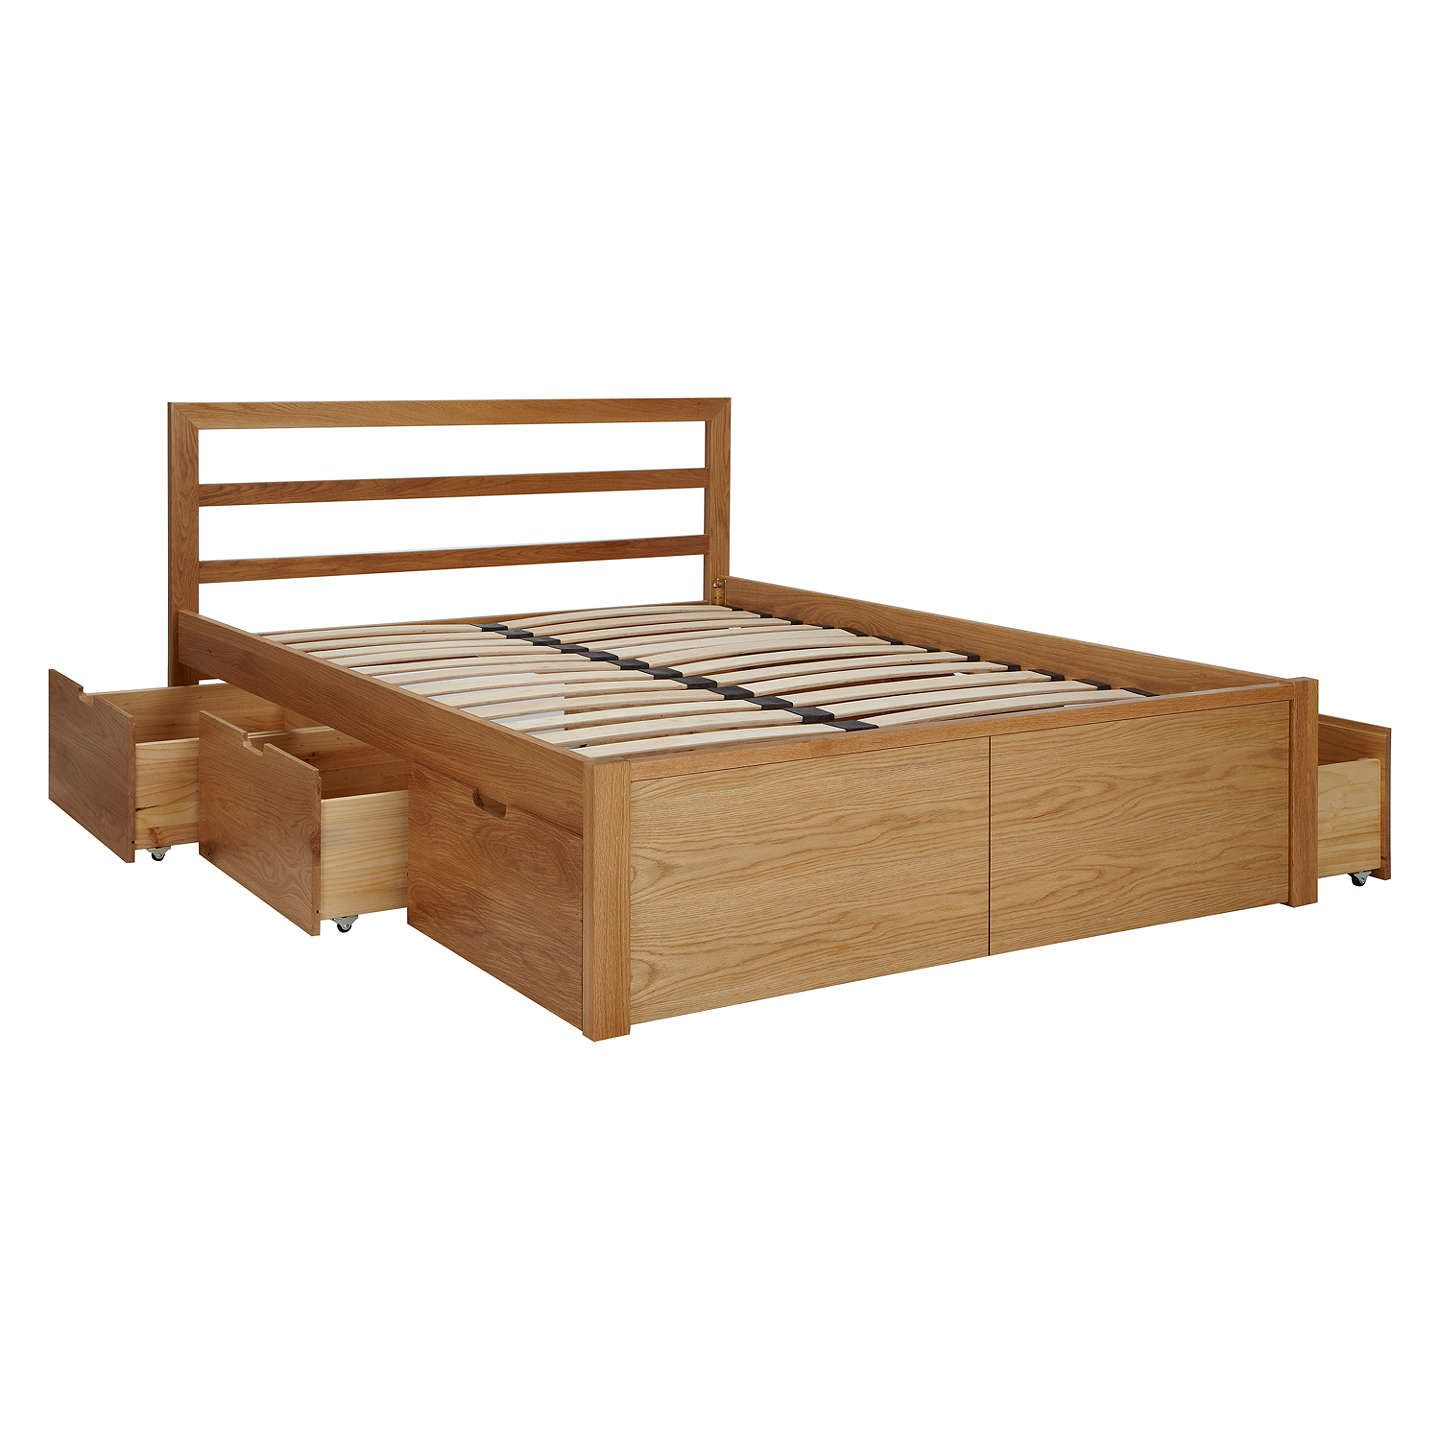 House by john lewis ollie storage bed king size oak storage beds